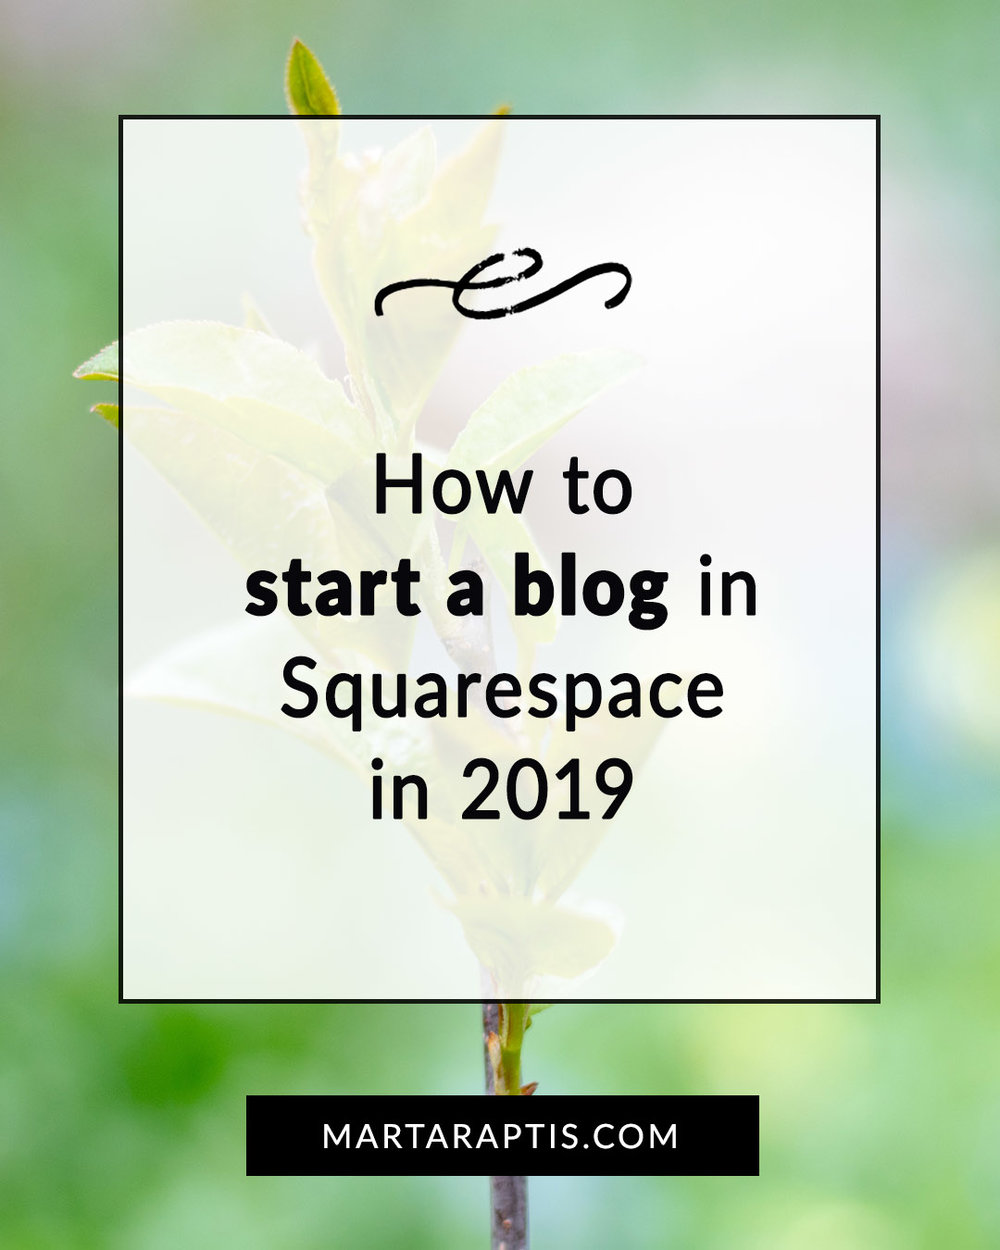 How to start a blog in Squarespace in 2019